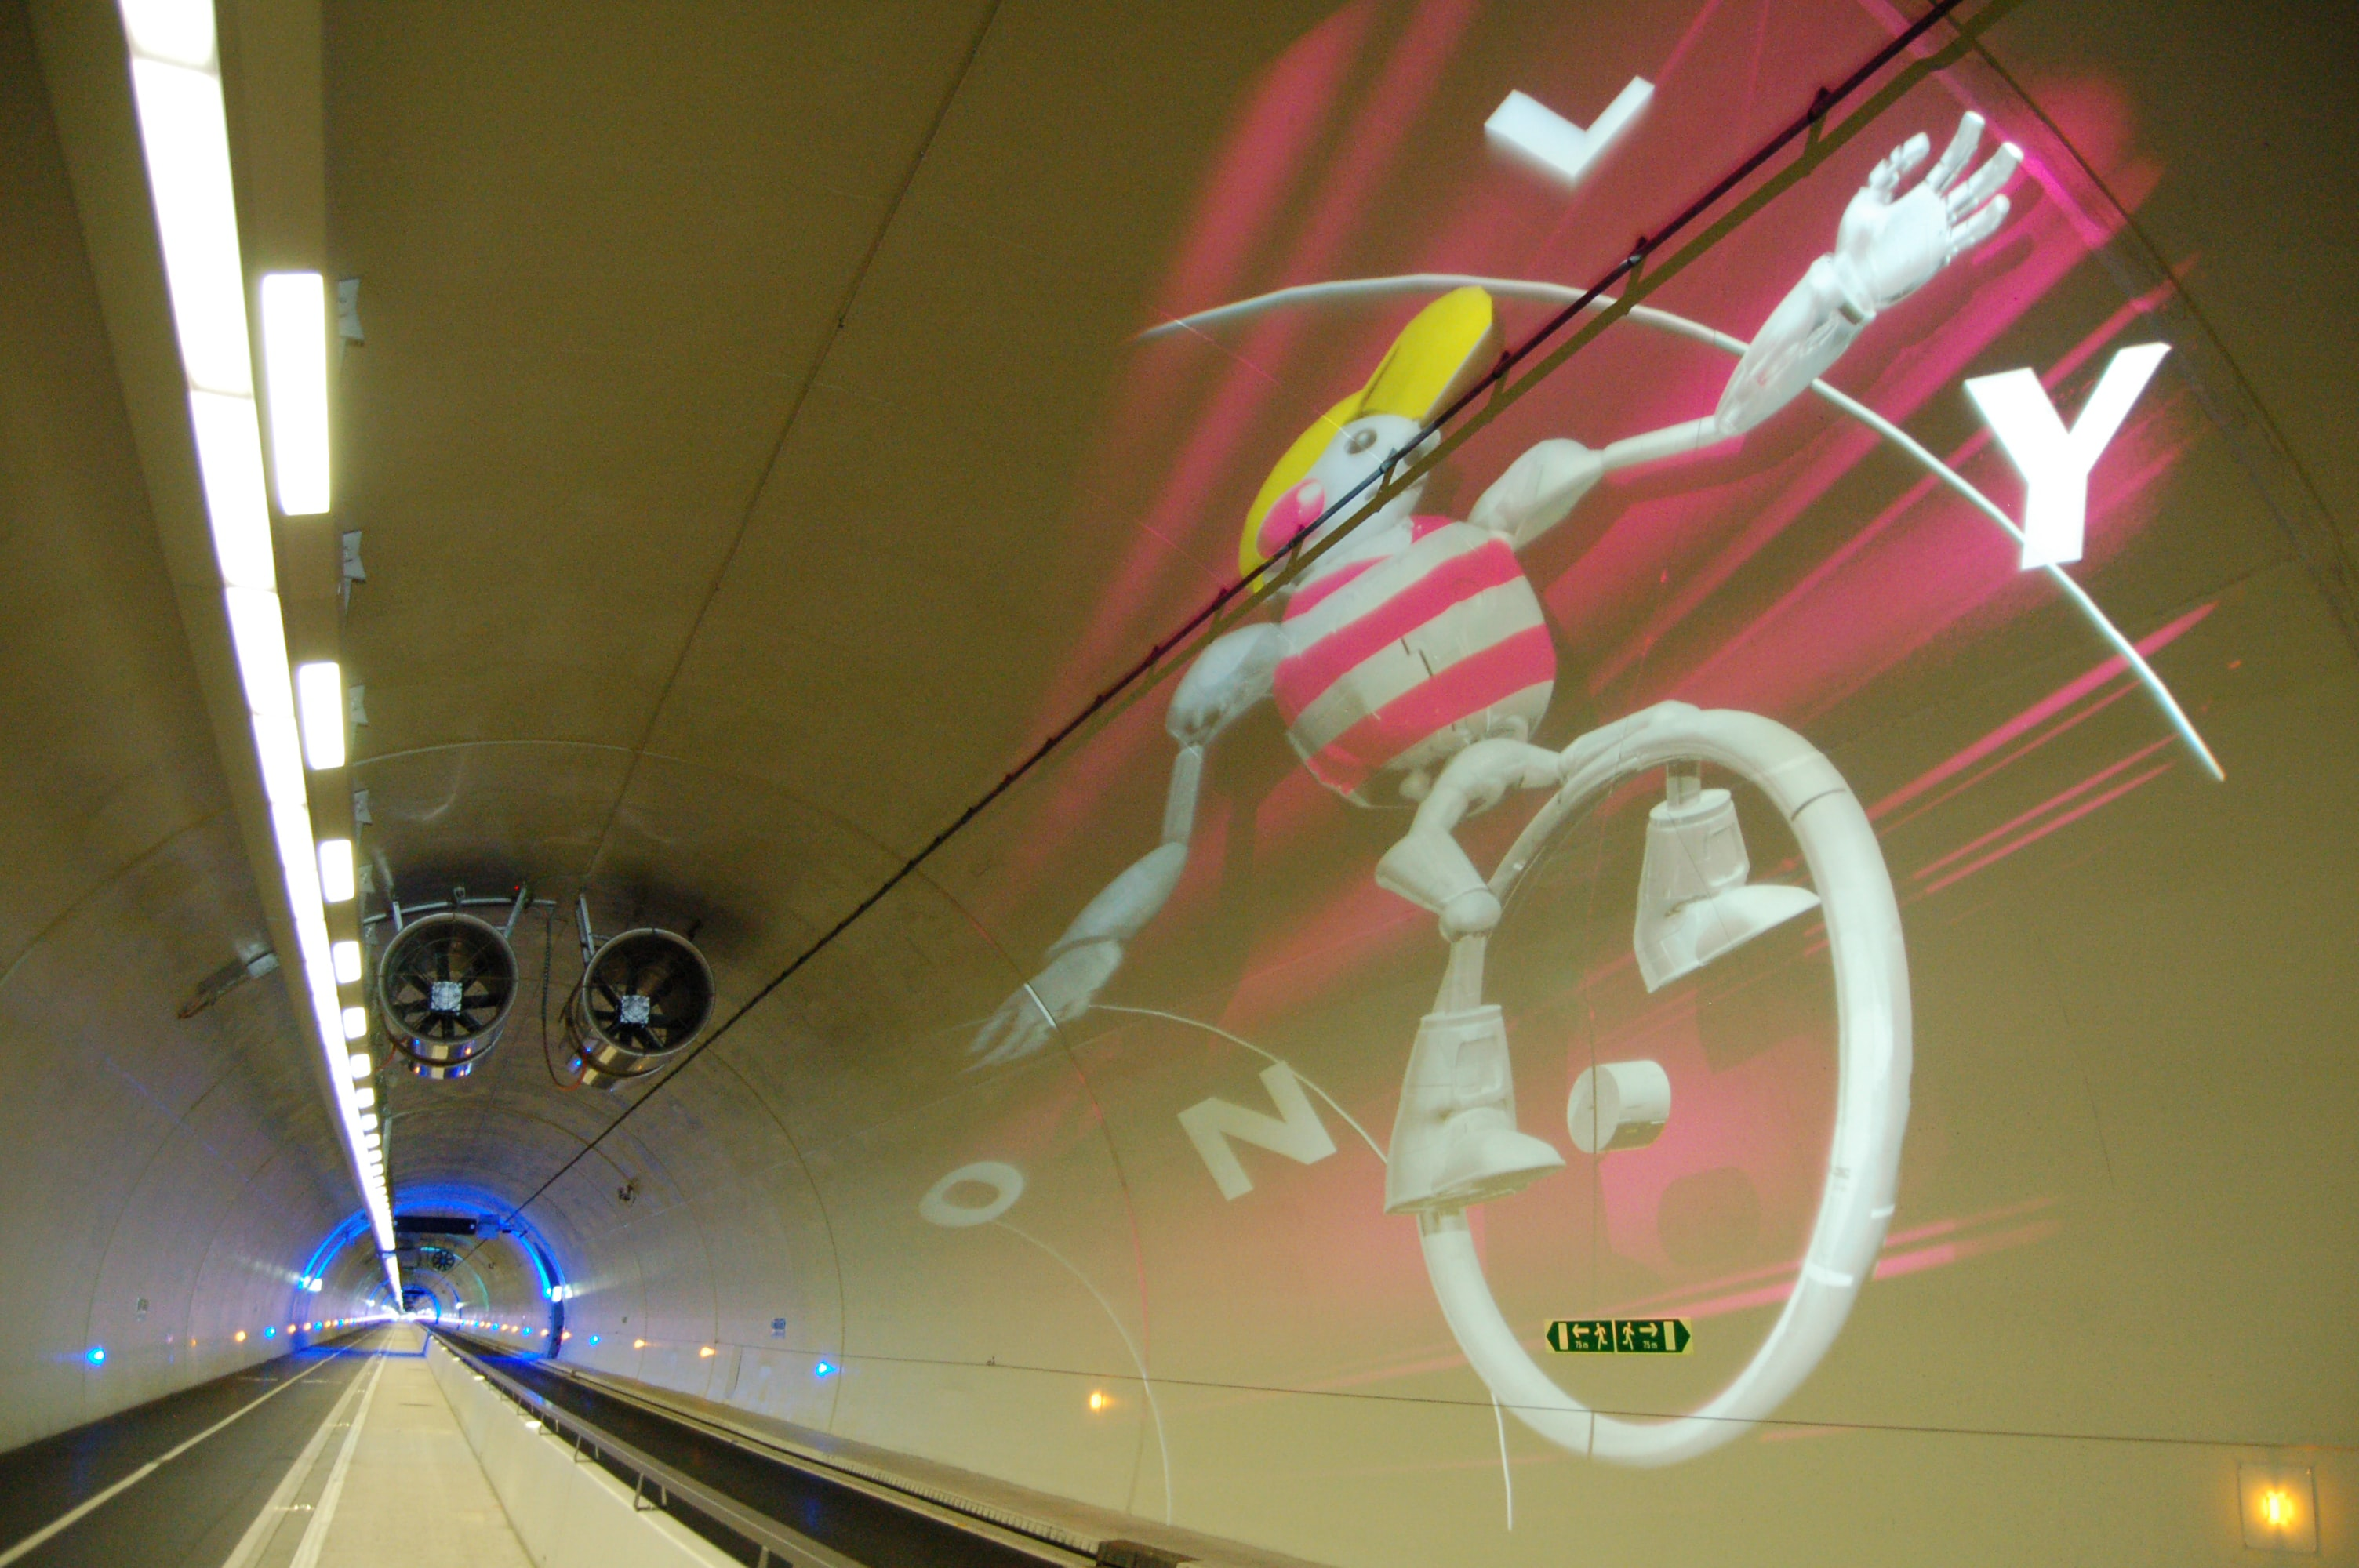 A white character on a unicycle displayed on the ceiling of a tunnel.